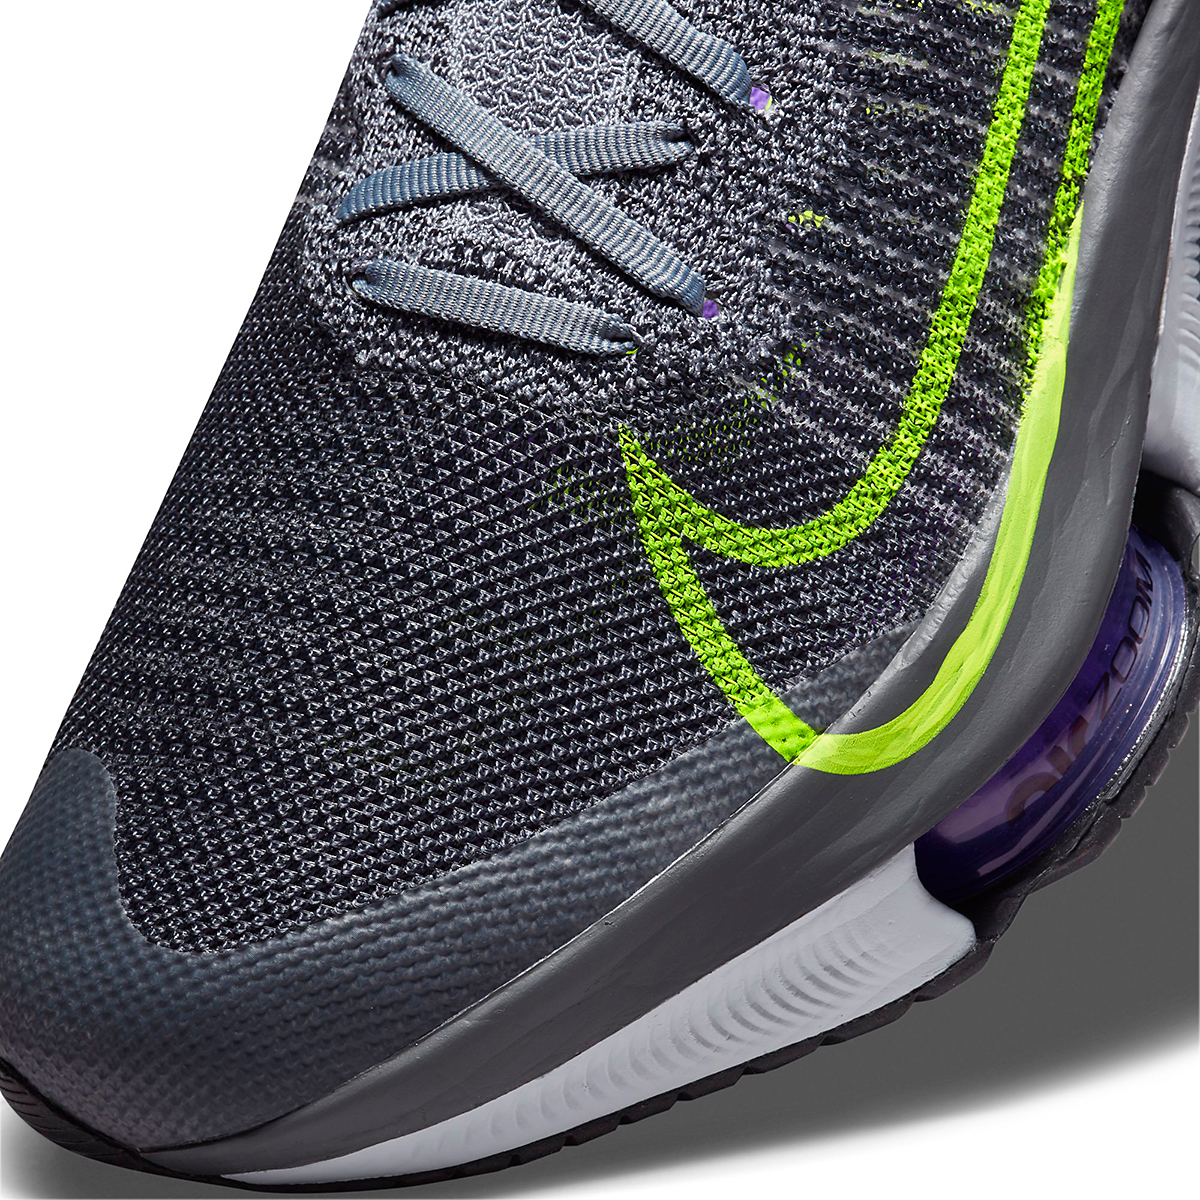 Men's Nike Air Zoom Tempo Next% Running Shoe - Color: Perticle Grey/Volt Grey/Wild Berry - Size: 10 - Width: Regular, Perticle Grey/Volt Grey/Wild Berry, large, image 7